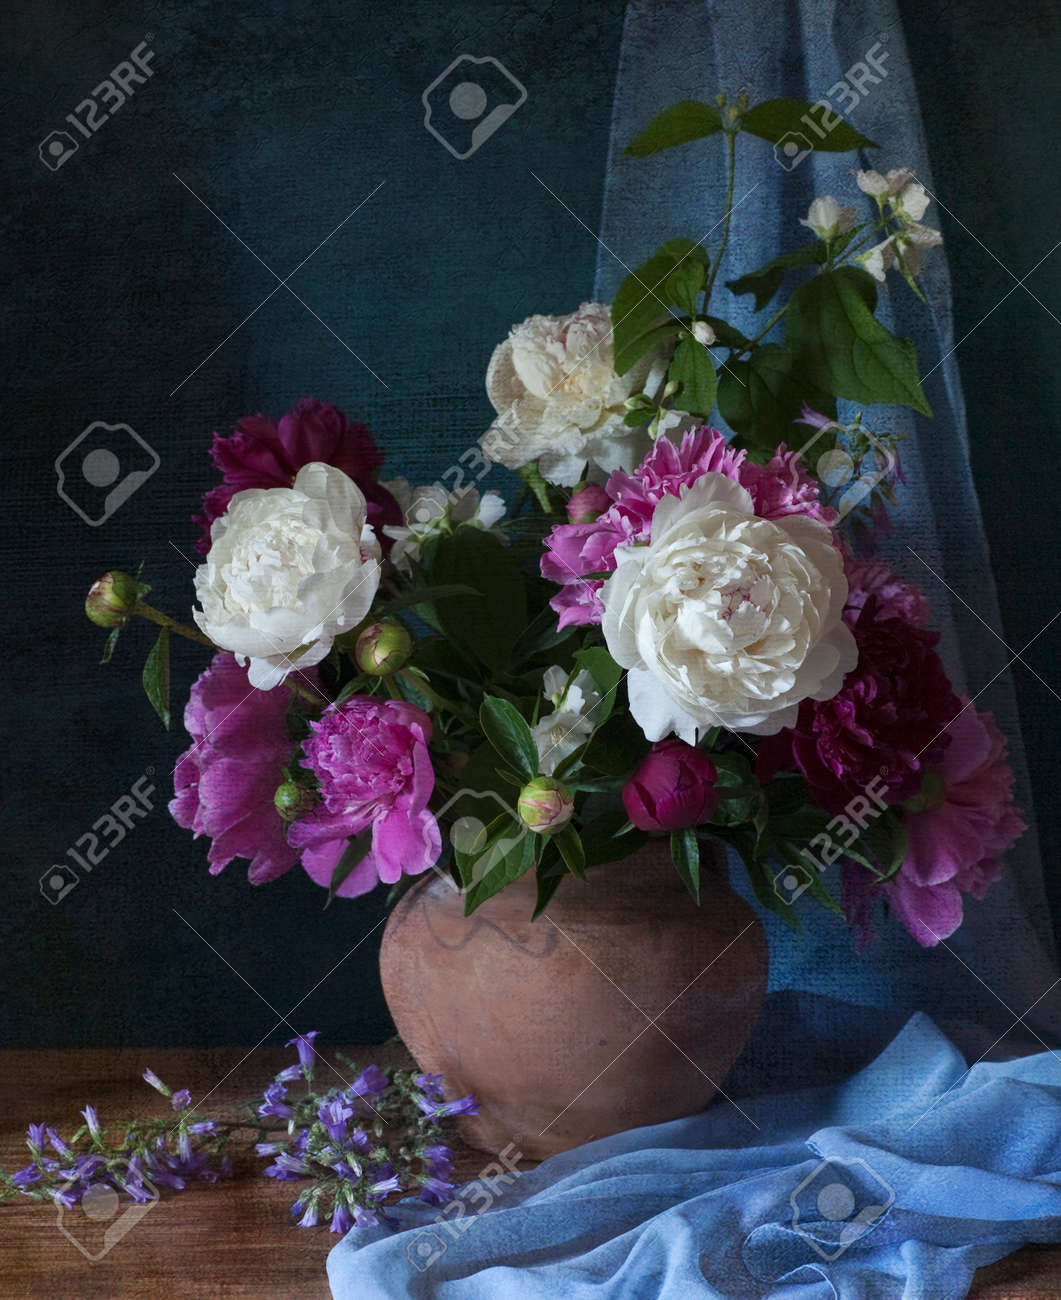 Still life with white peonies in vase Stock Photo - 25006267